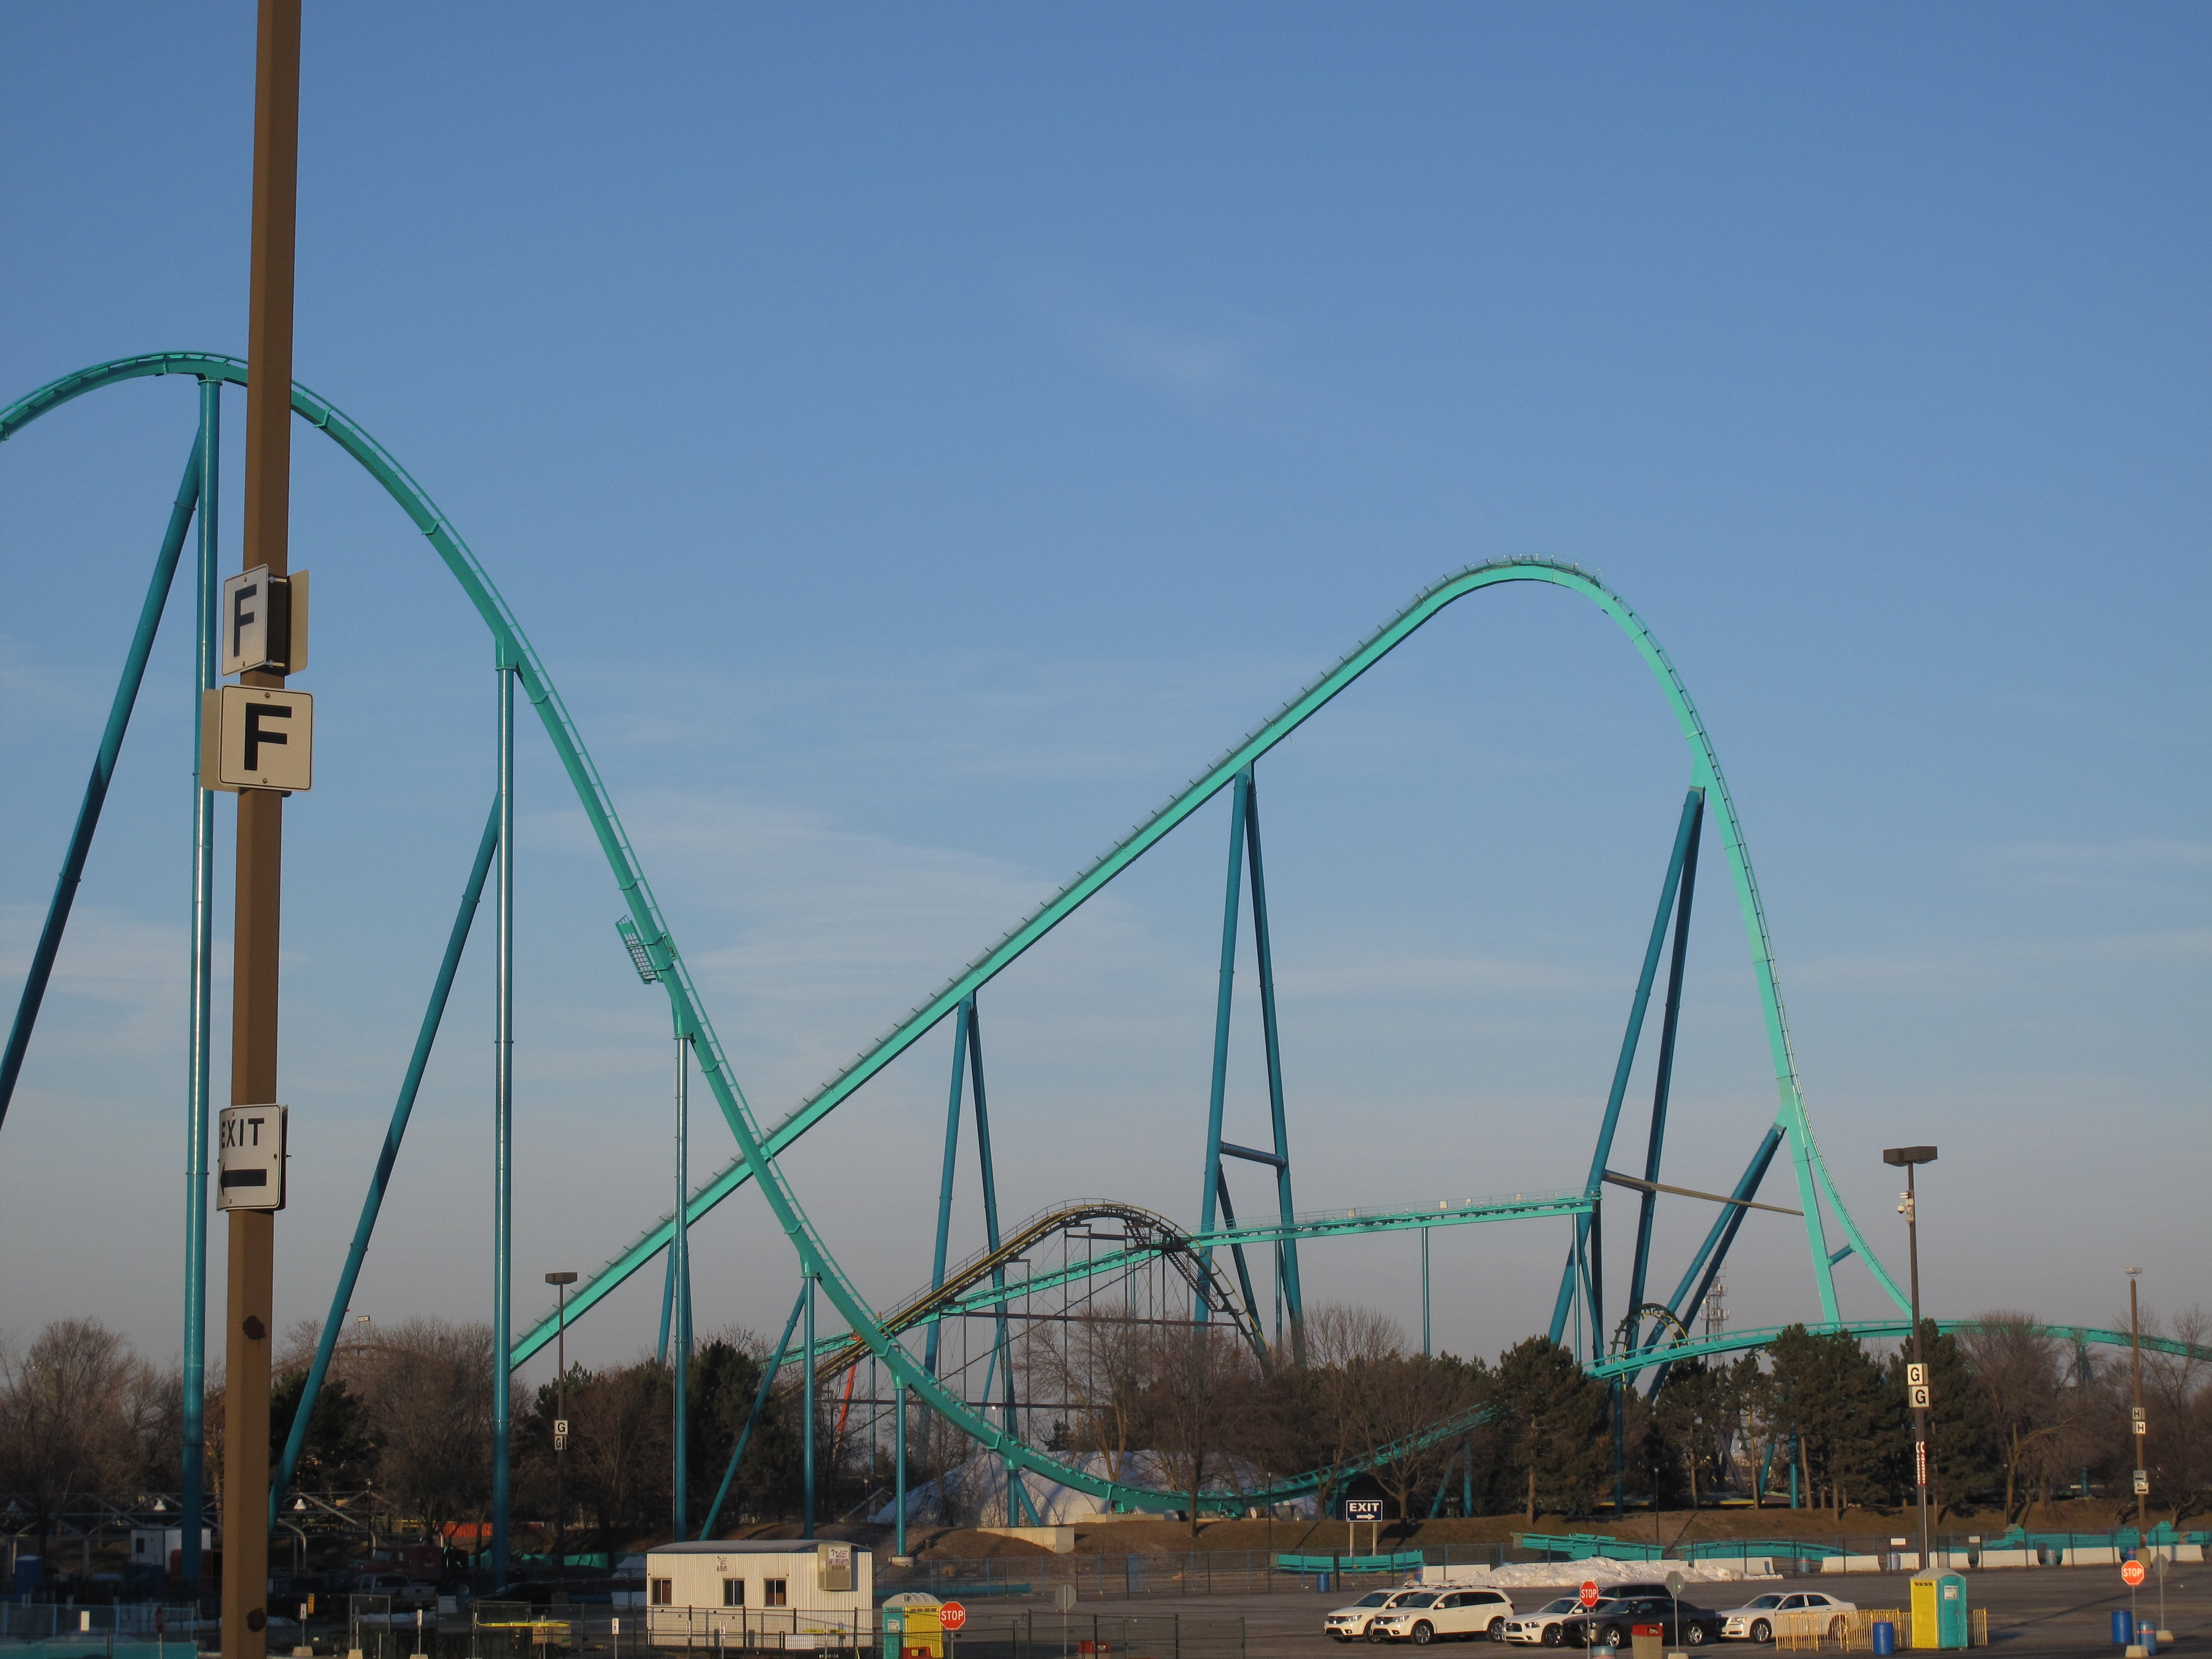 Leviathan: Monstrous Construction | CraveCoasters